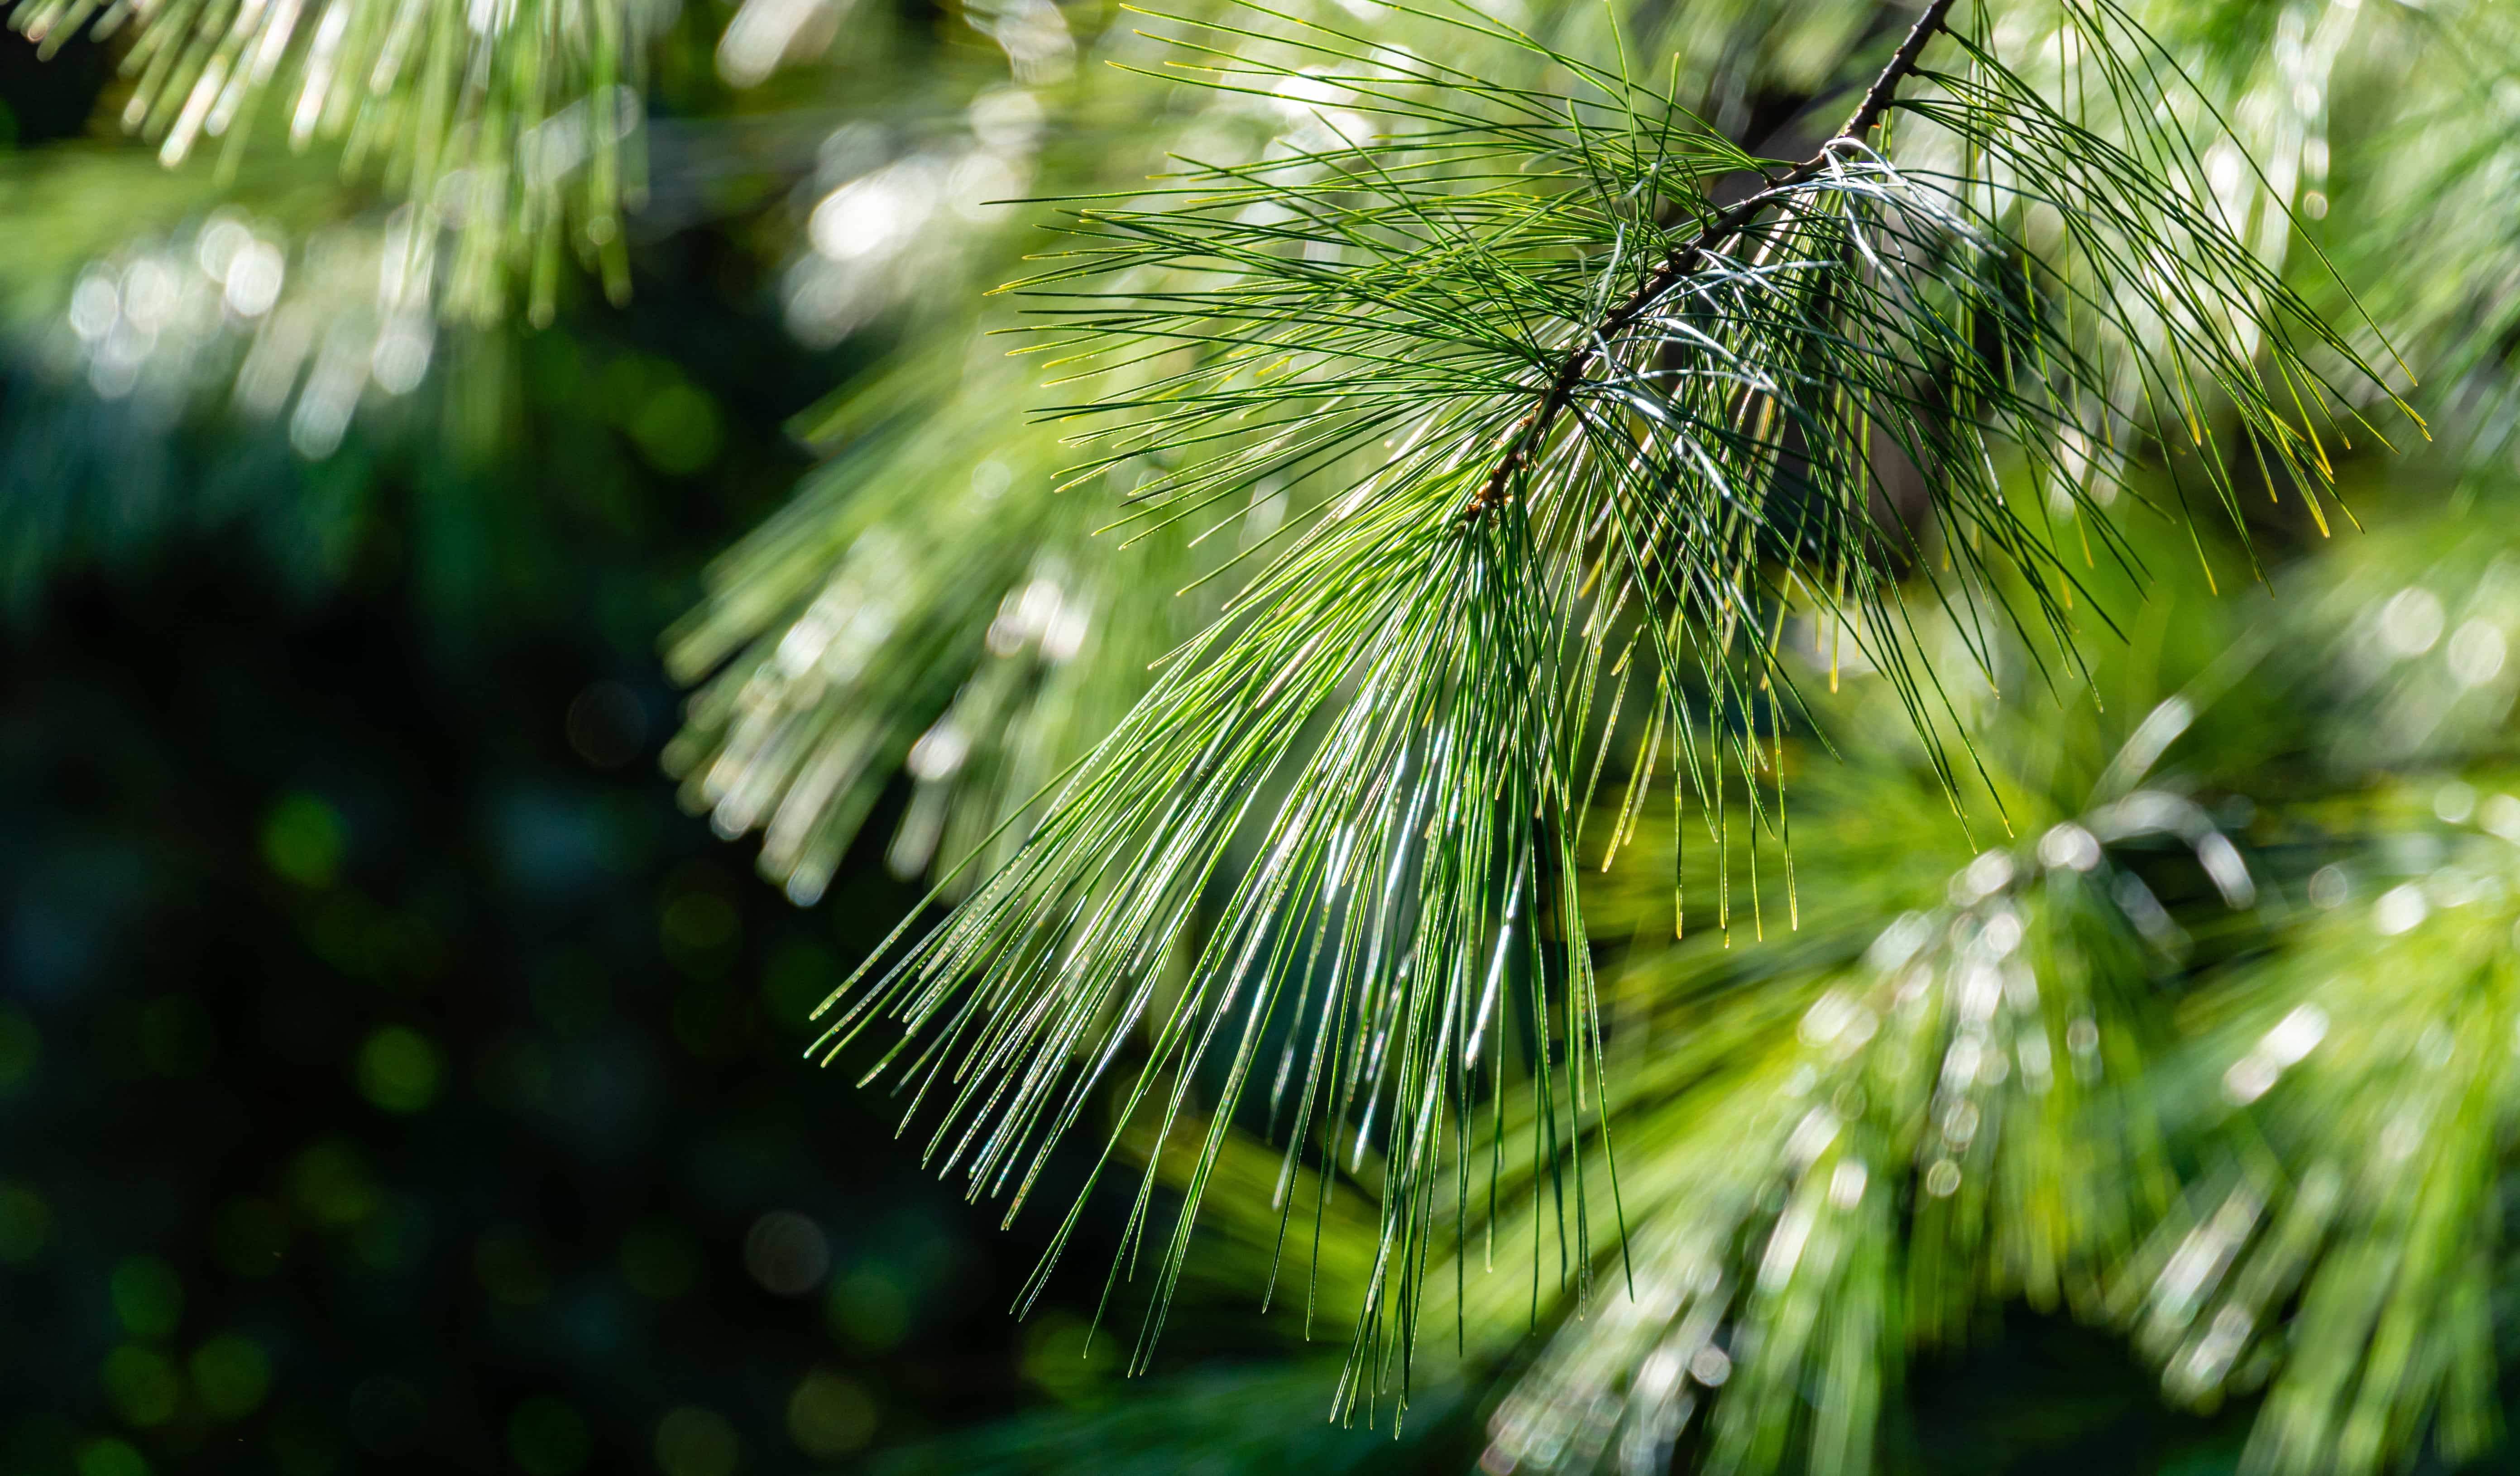 Close up of pine needles